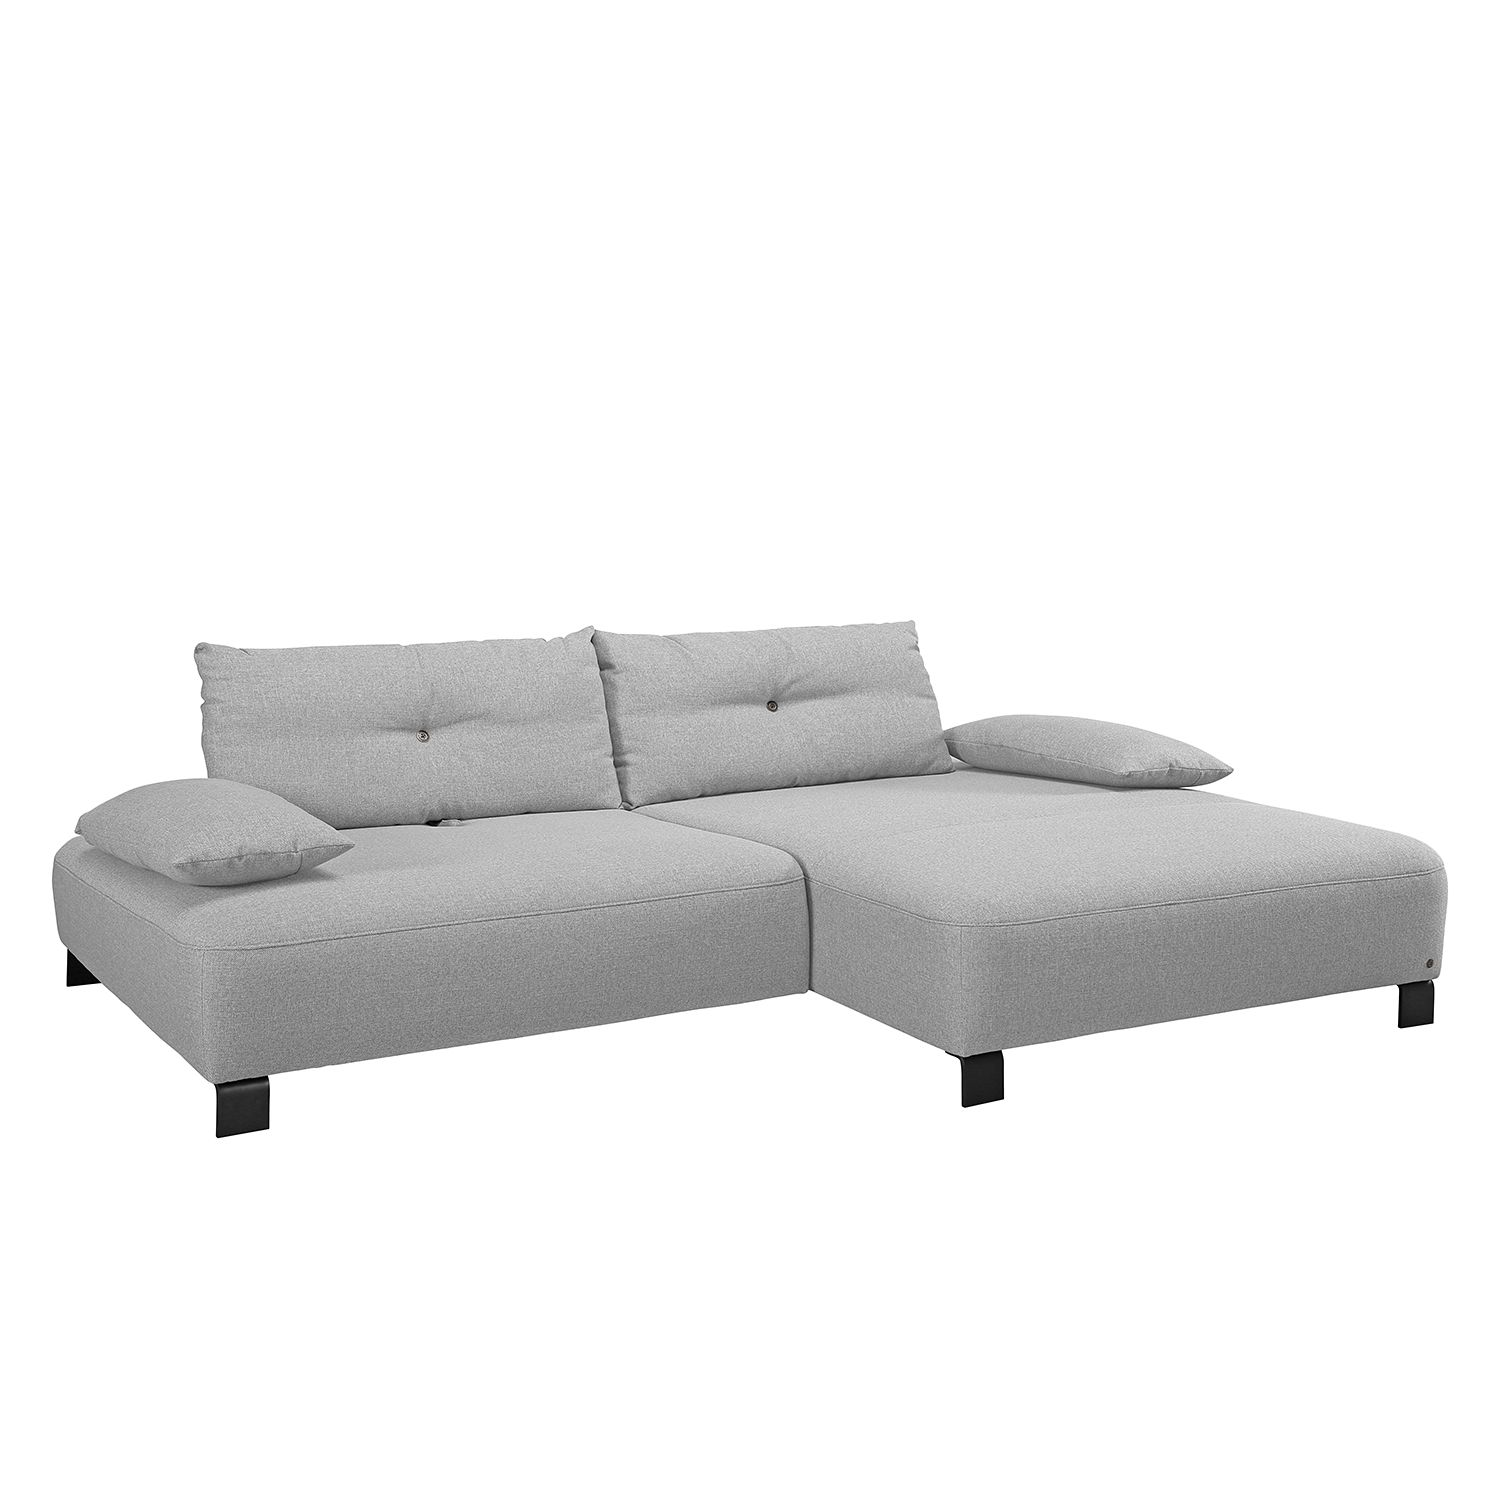 Ecksofa Cushion Shift Webstoff